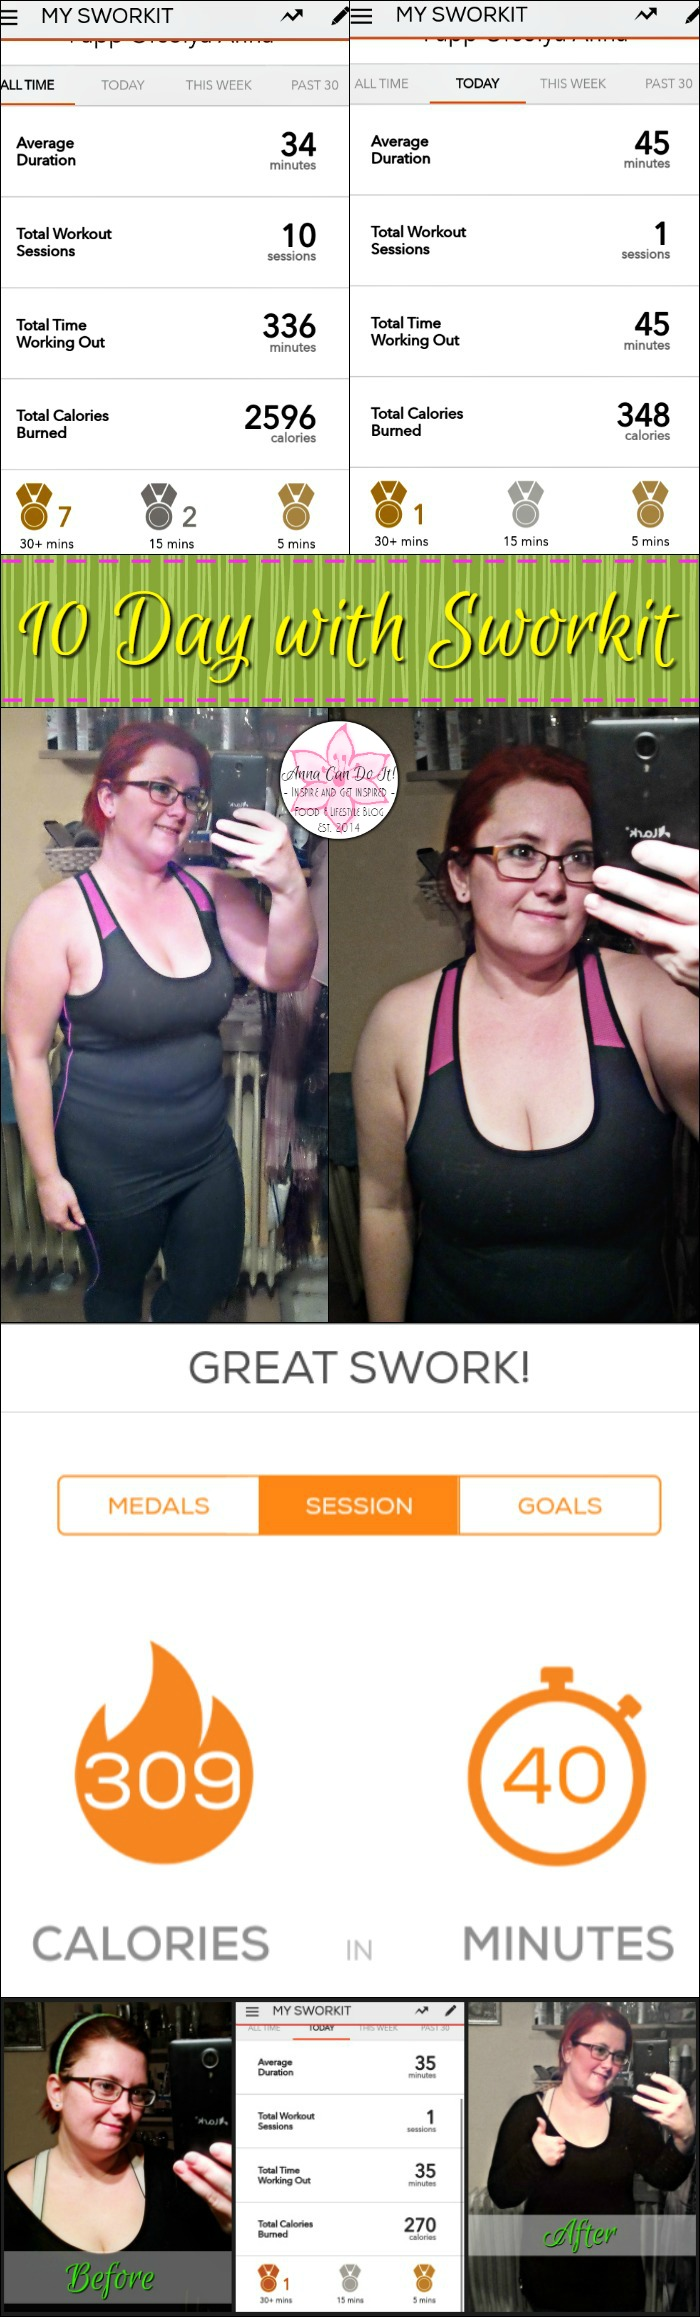 10 Day with Sworkit - Anna Can Do It!